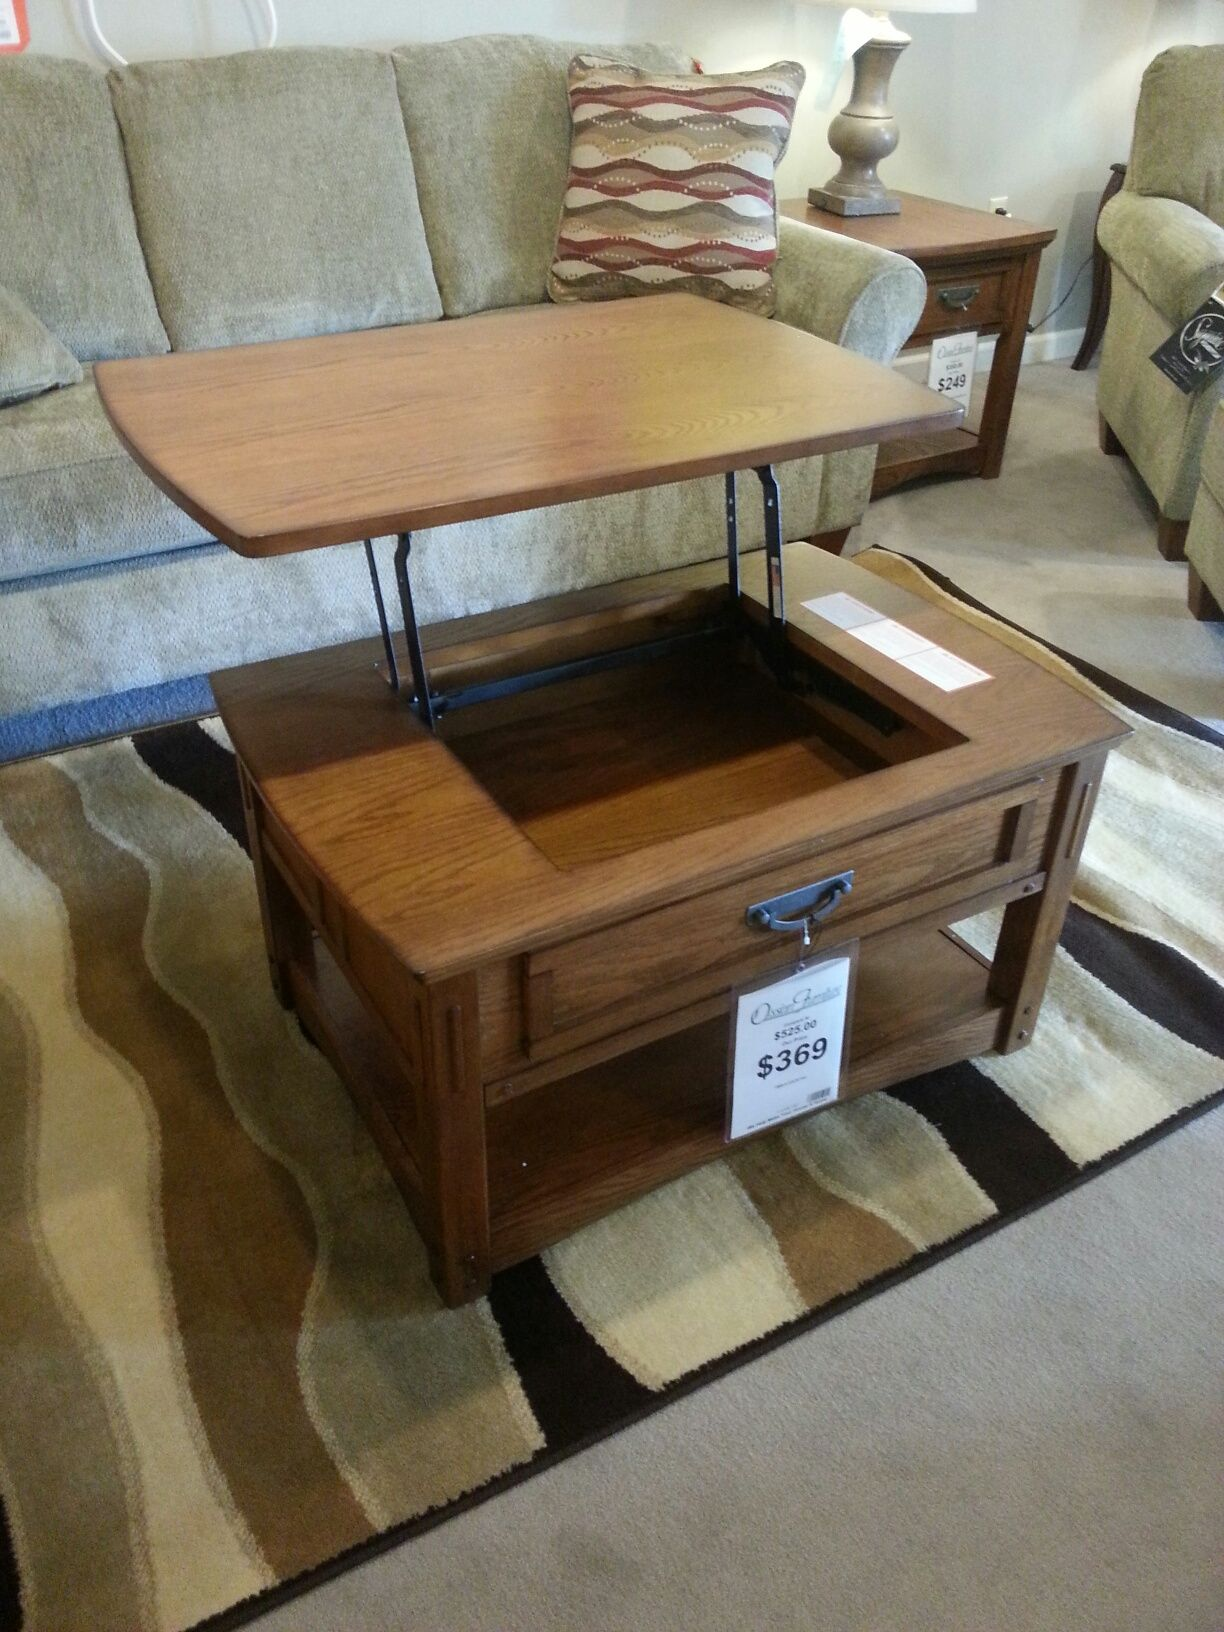 Coffee table turned into tv dinner tray just 369 at coffee table turned into tv dinner tray just 369 at ossianfurniture geotapseo Images